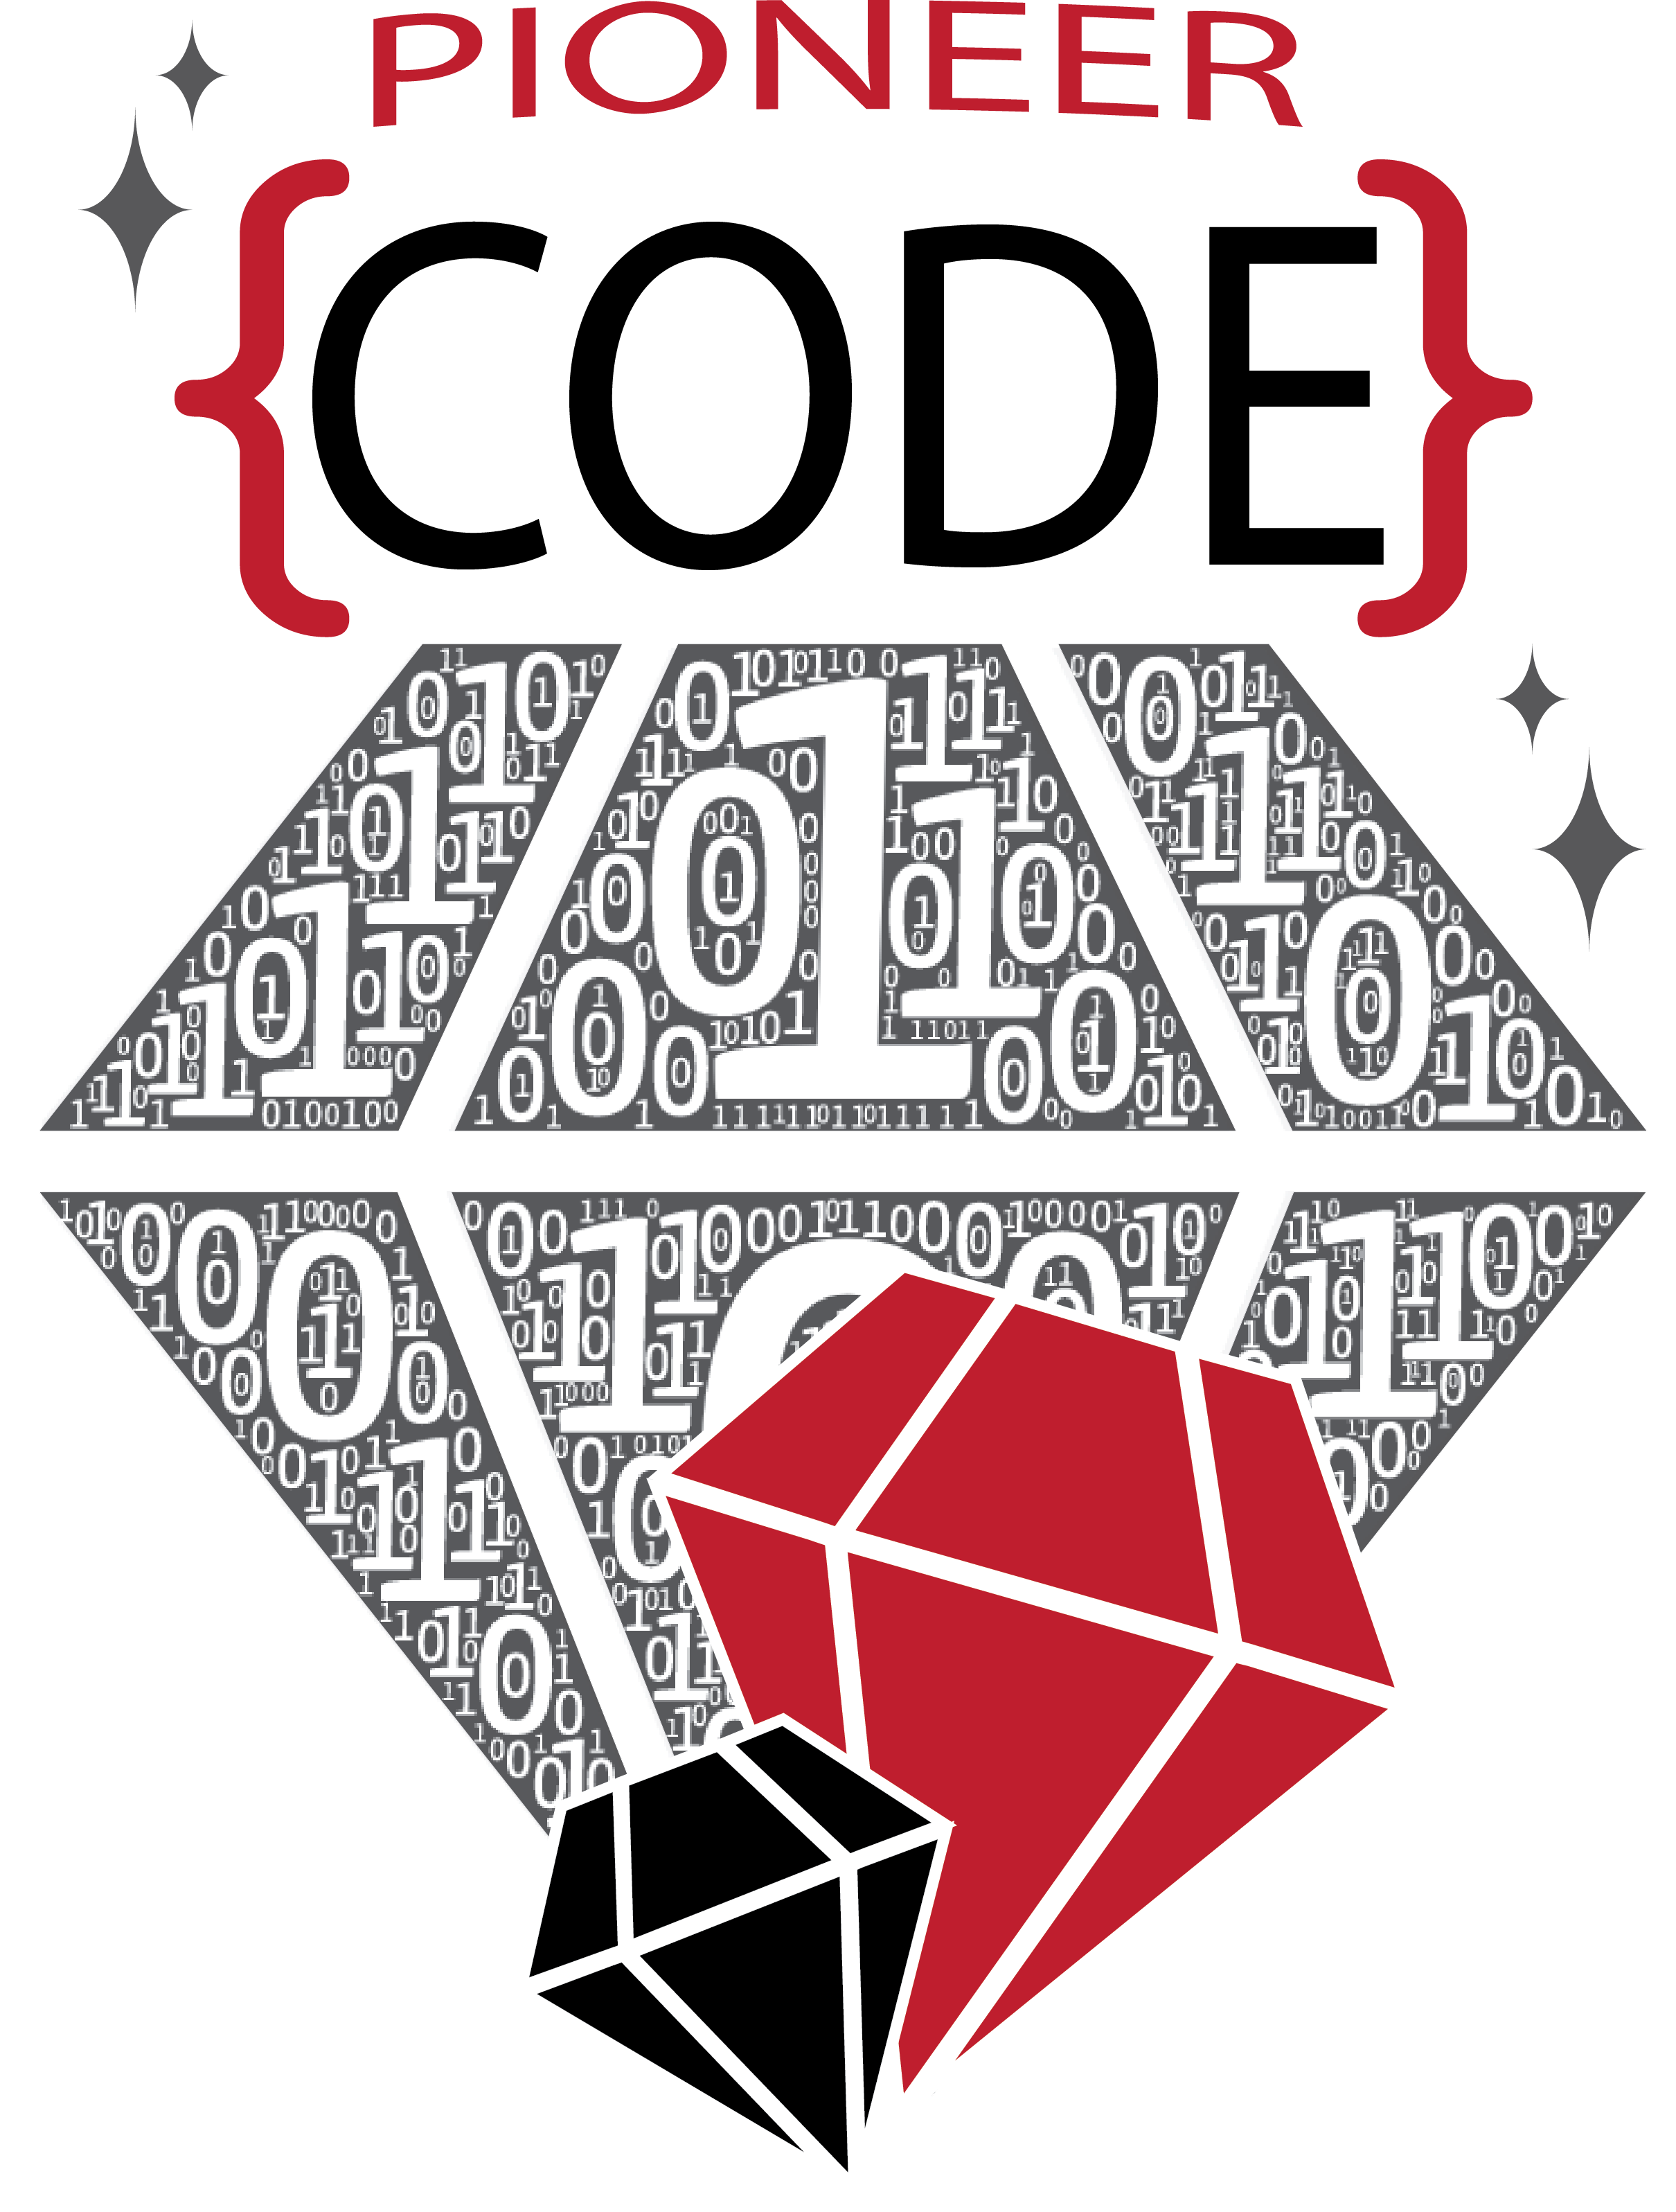 Pioneer Code Diamonds logo